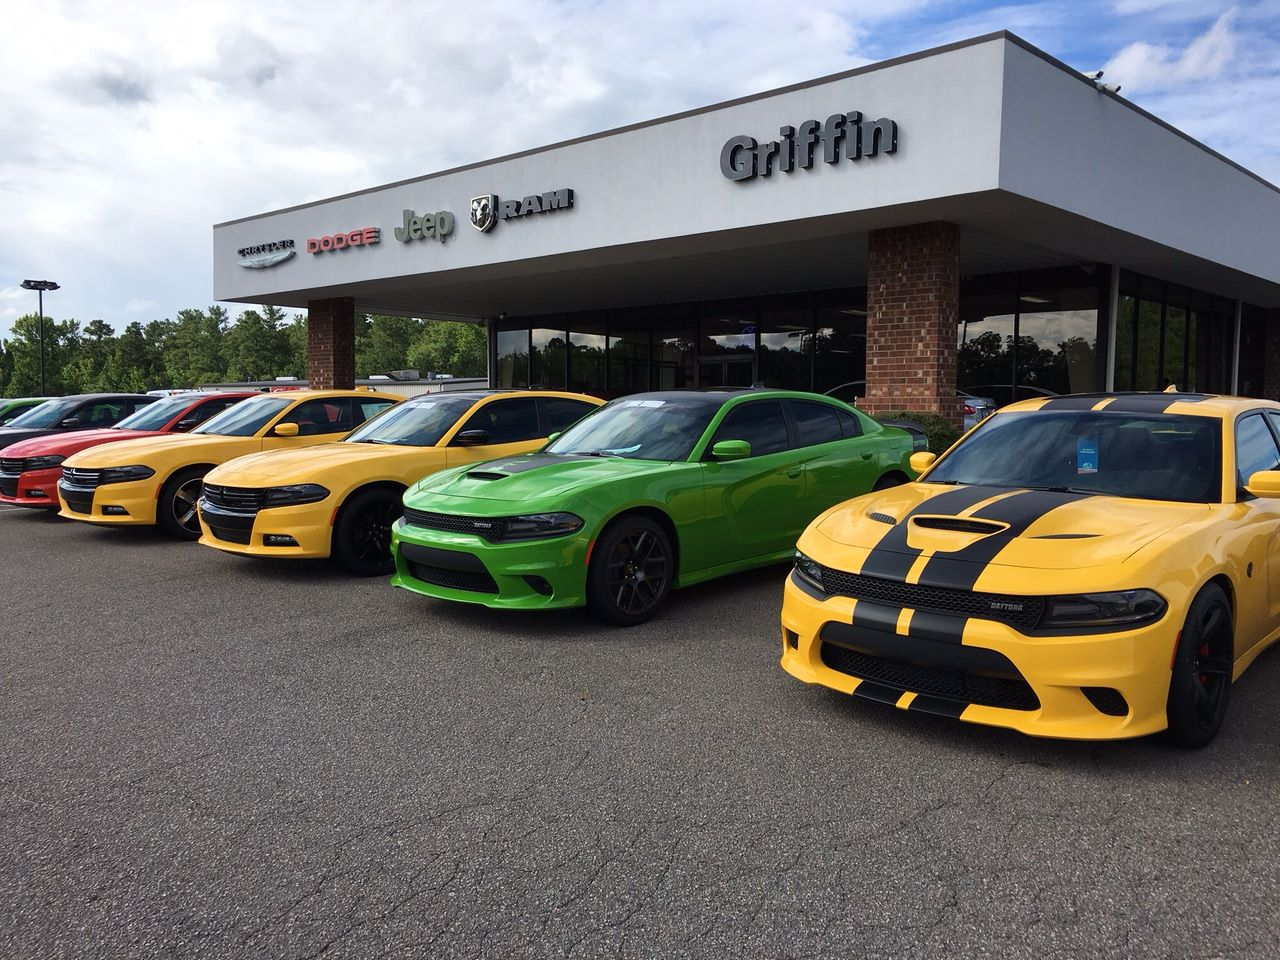 Griffin Chrysler Dodge Jeep